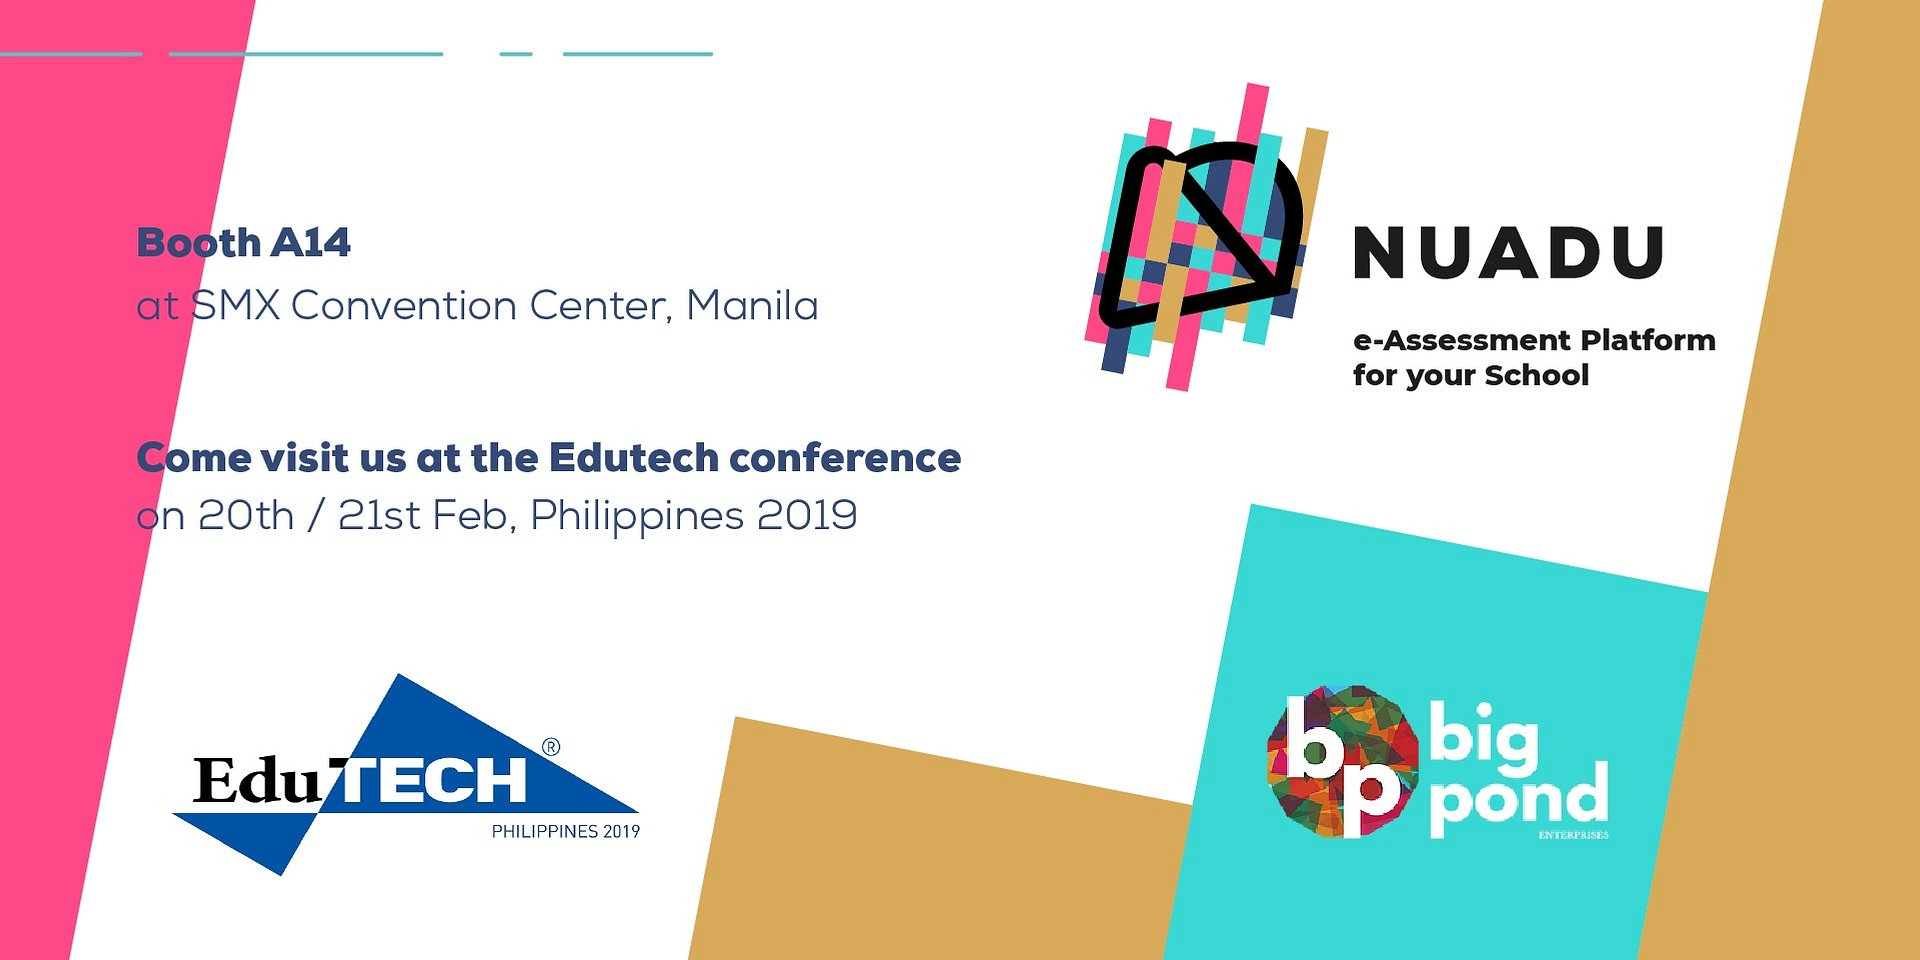 Introducing NUADU to schools in the Philippines